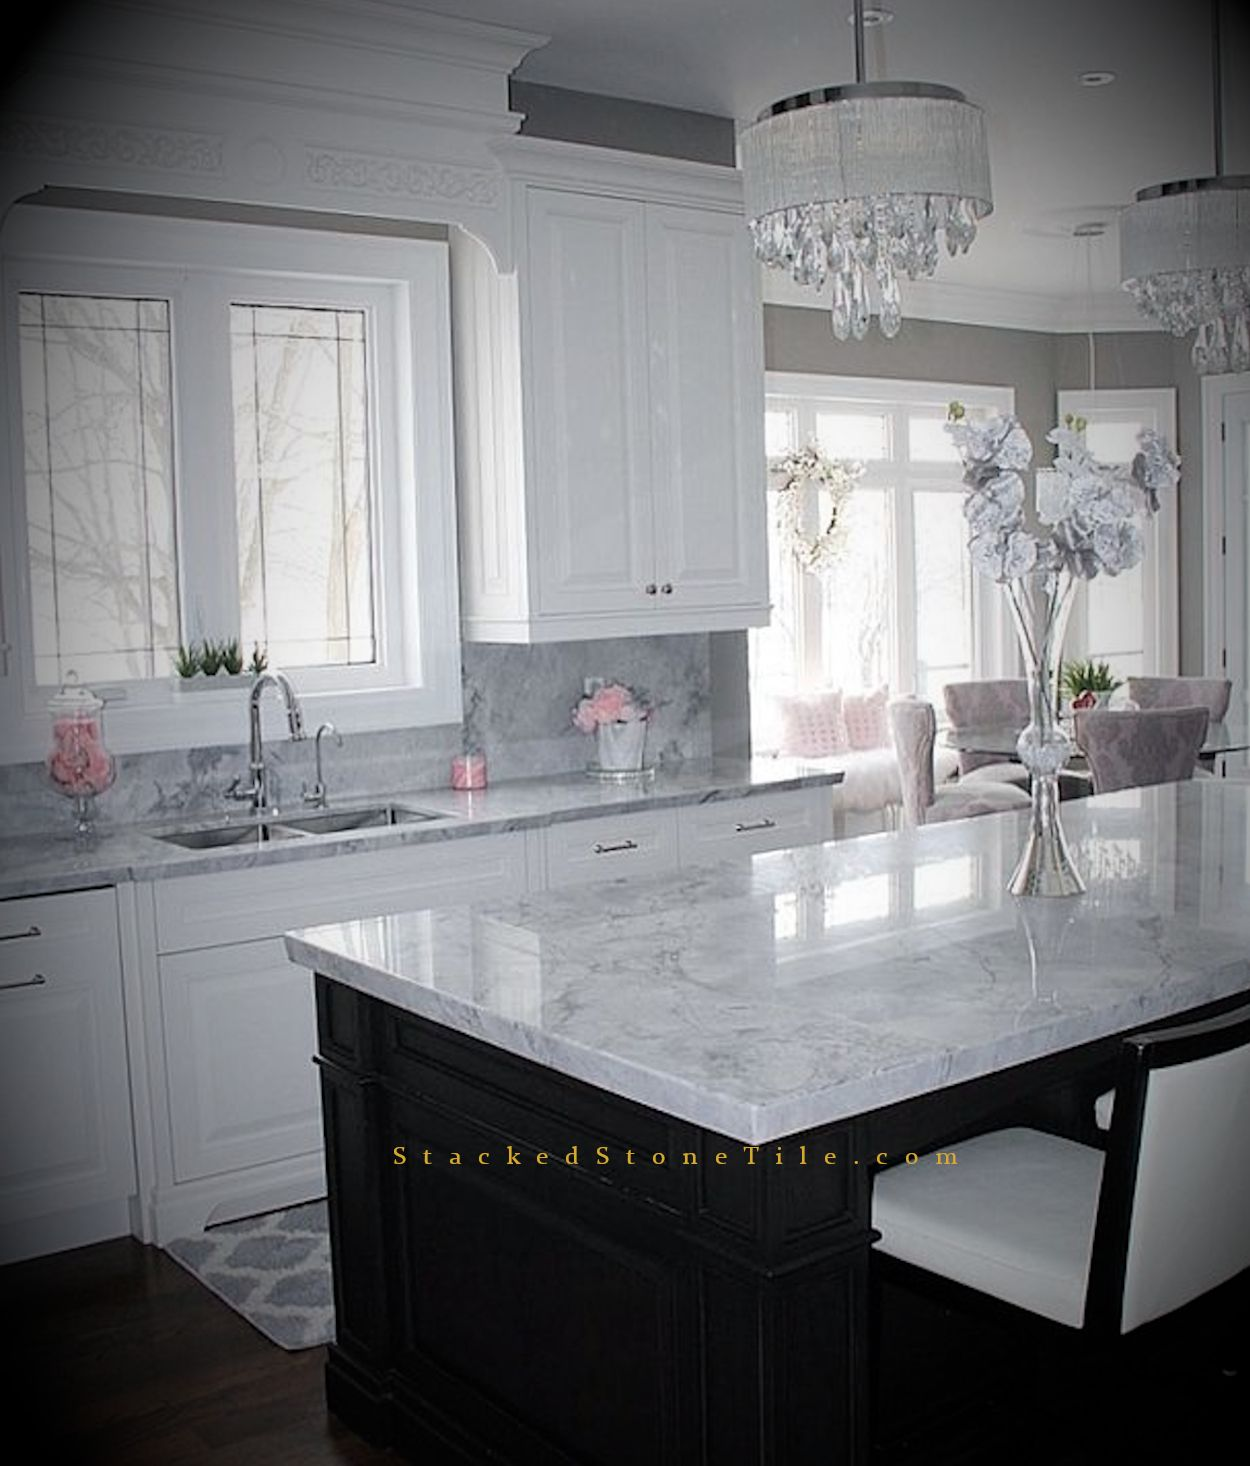 25 Awesome Traditional Kitchen Design: Top 15 Best Materials For Kitchen Countertops 2020